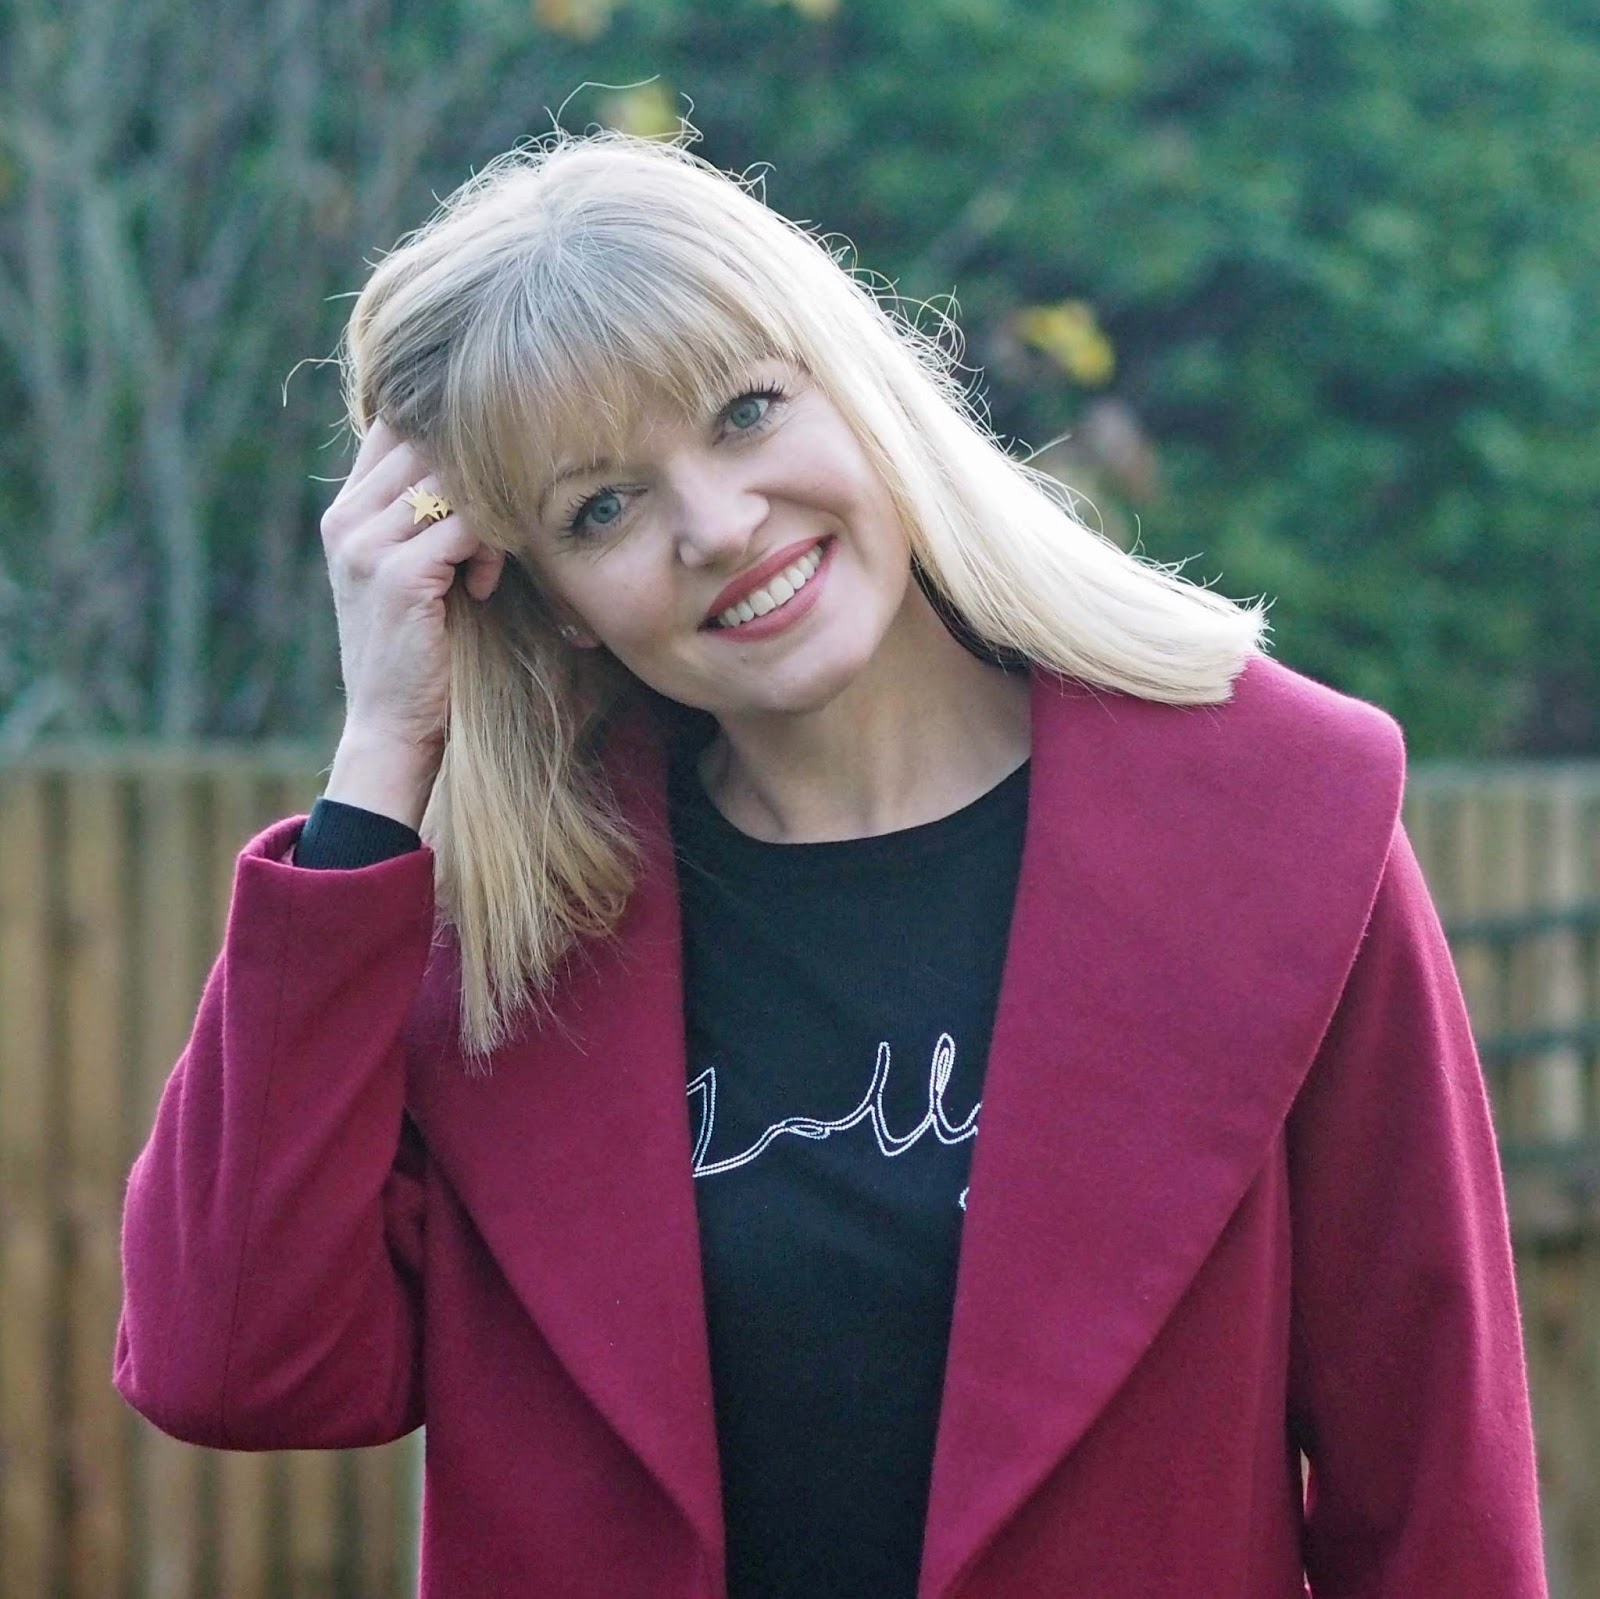 Over 40 life and style blogger, close-up image